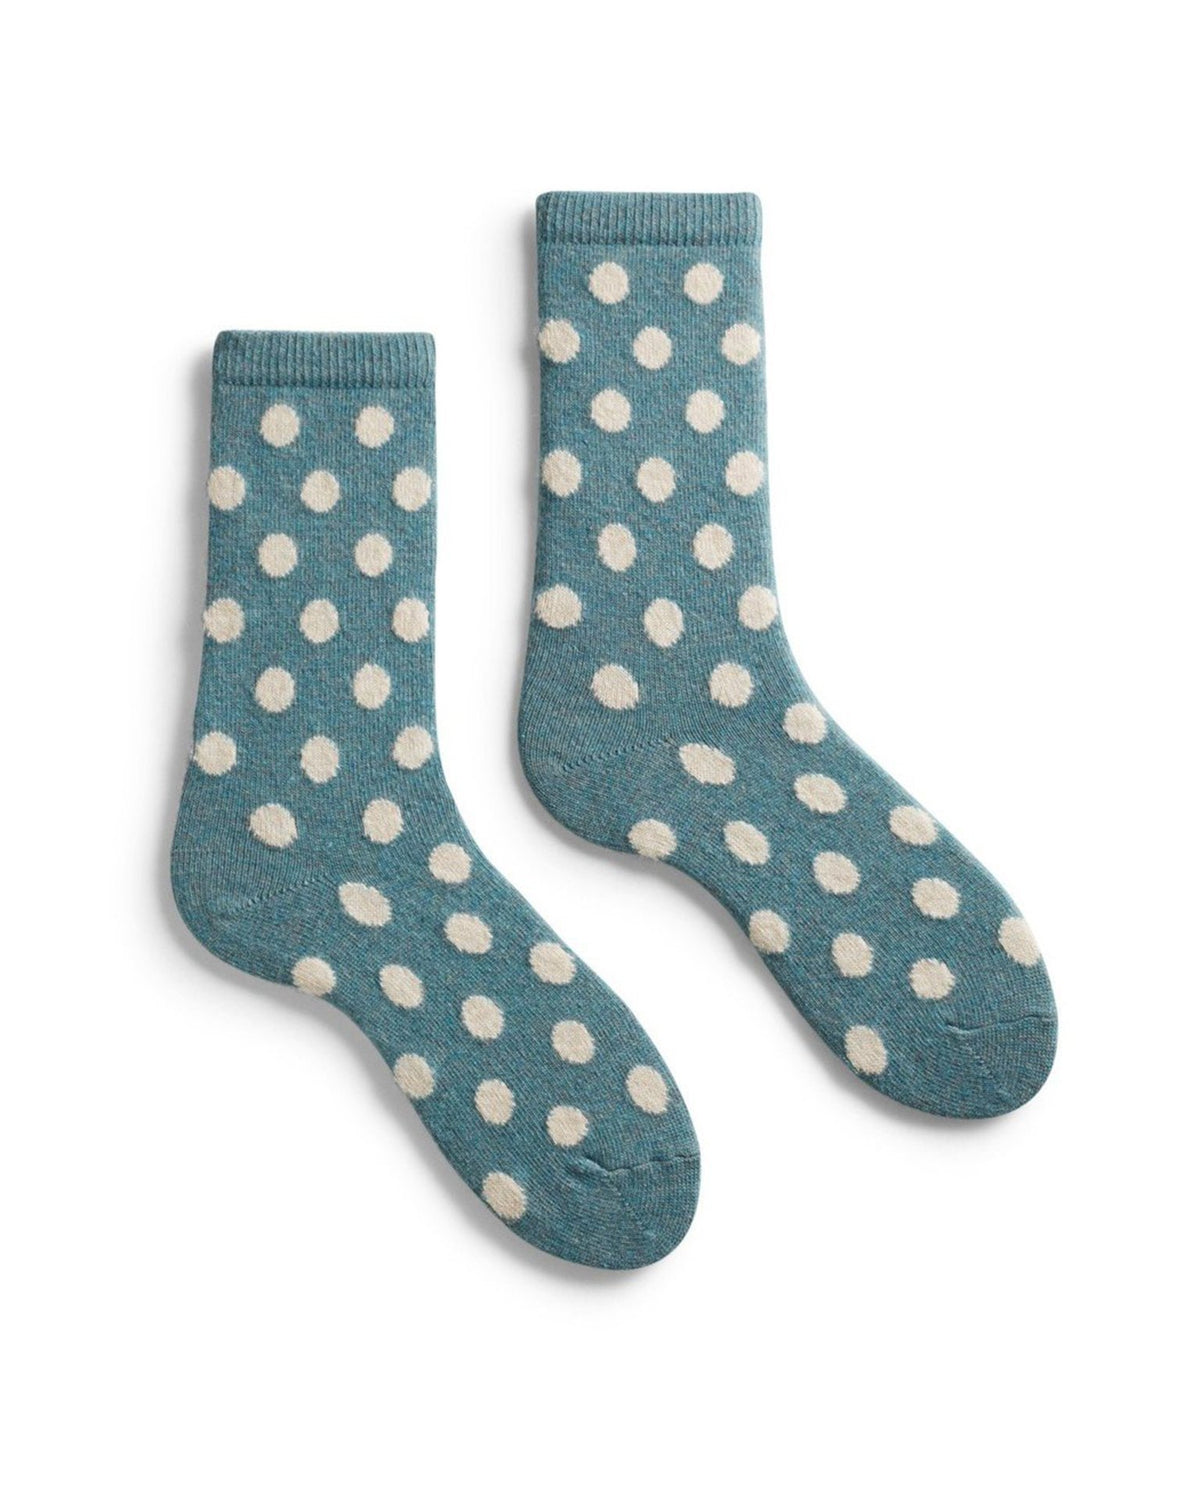 Lisa B. Accessories Mineral / O/S Dot Socks